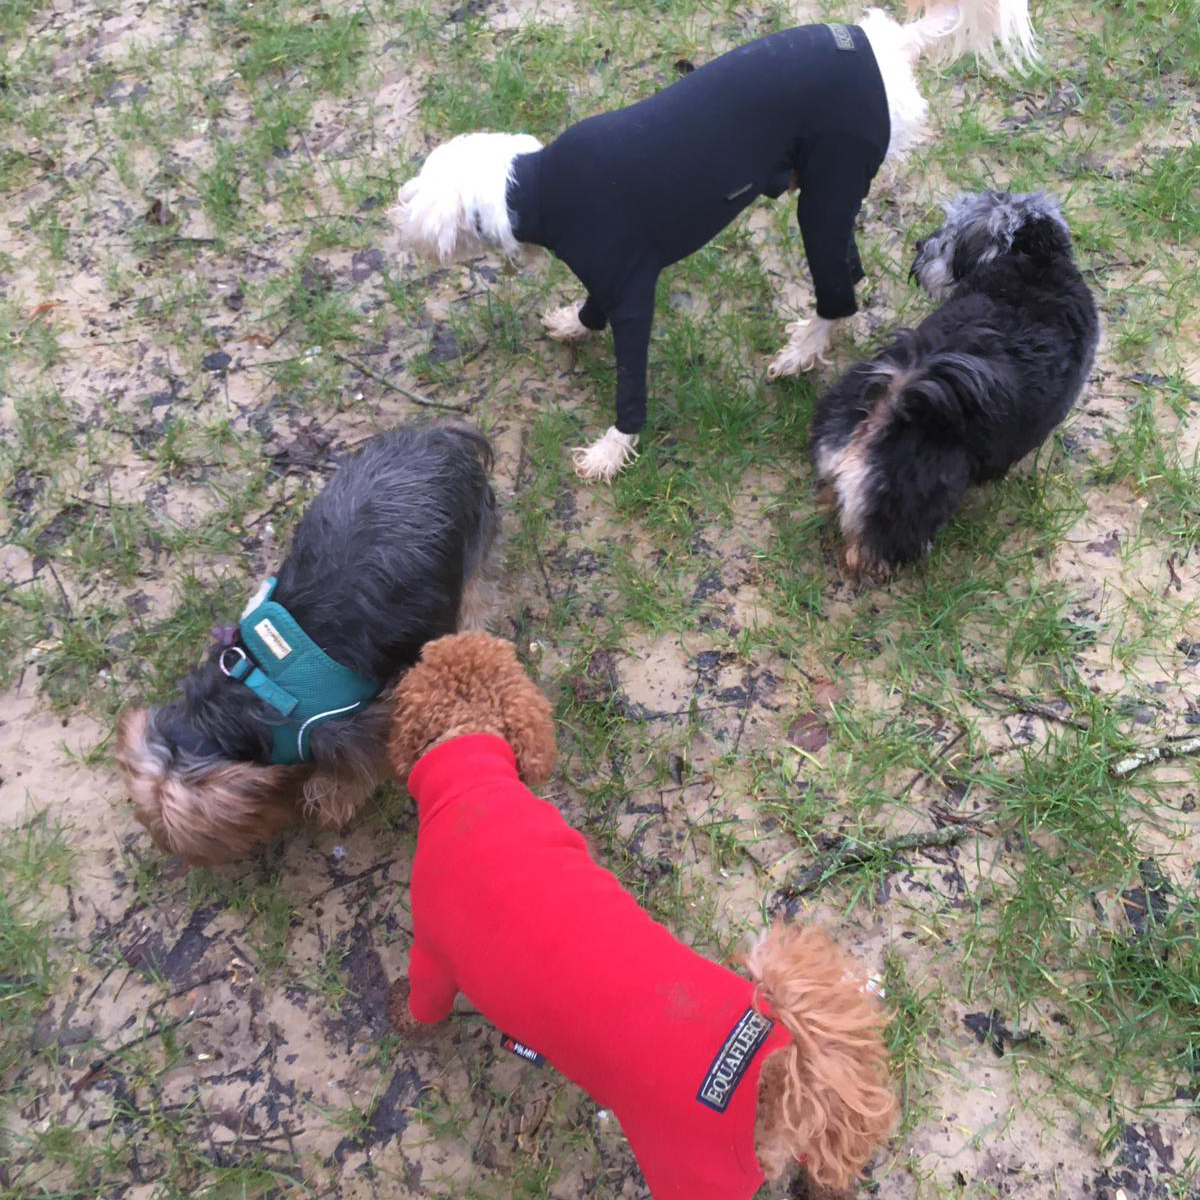 Charlie Bears Doggy Daycare for little dogs